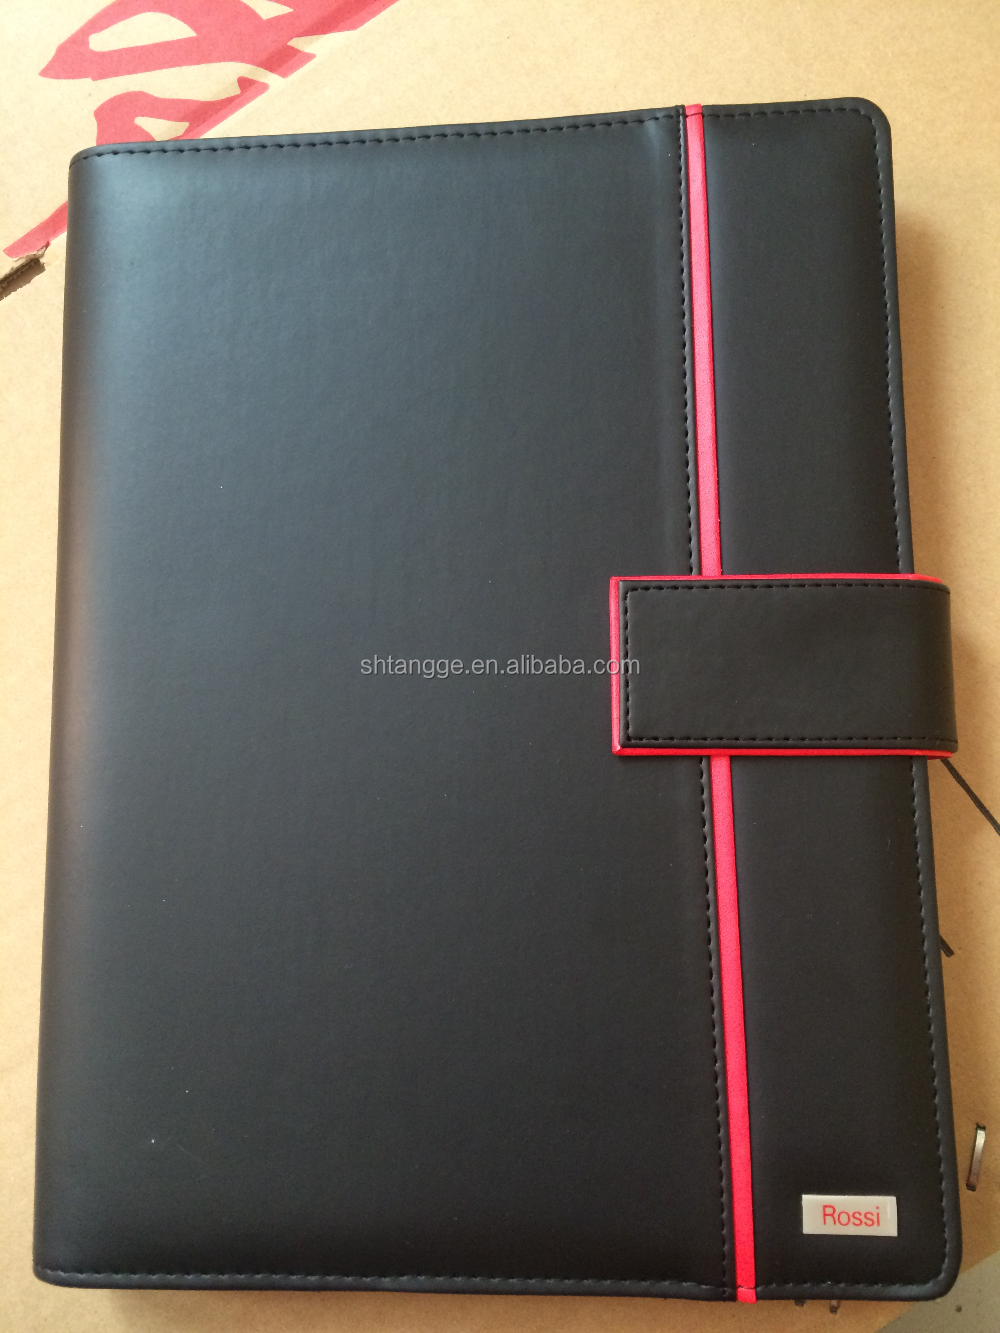 Wholesale Customized Soft Pu Notebook With Metal Clip